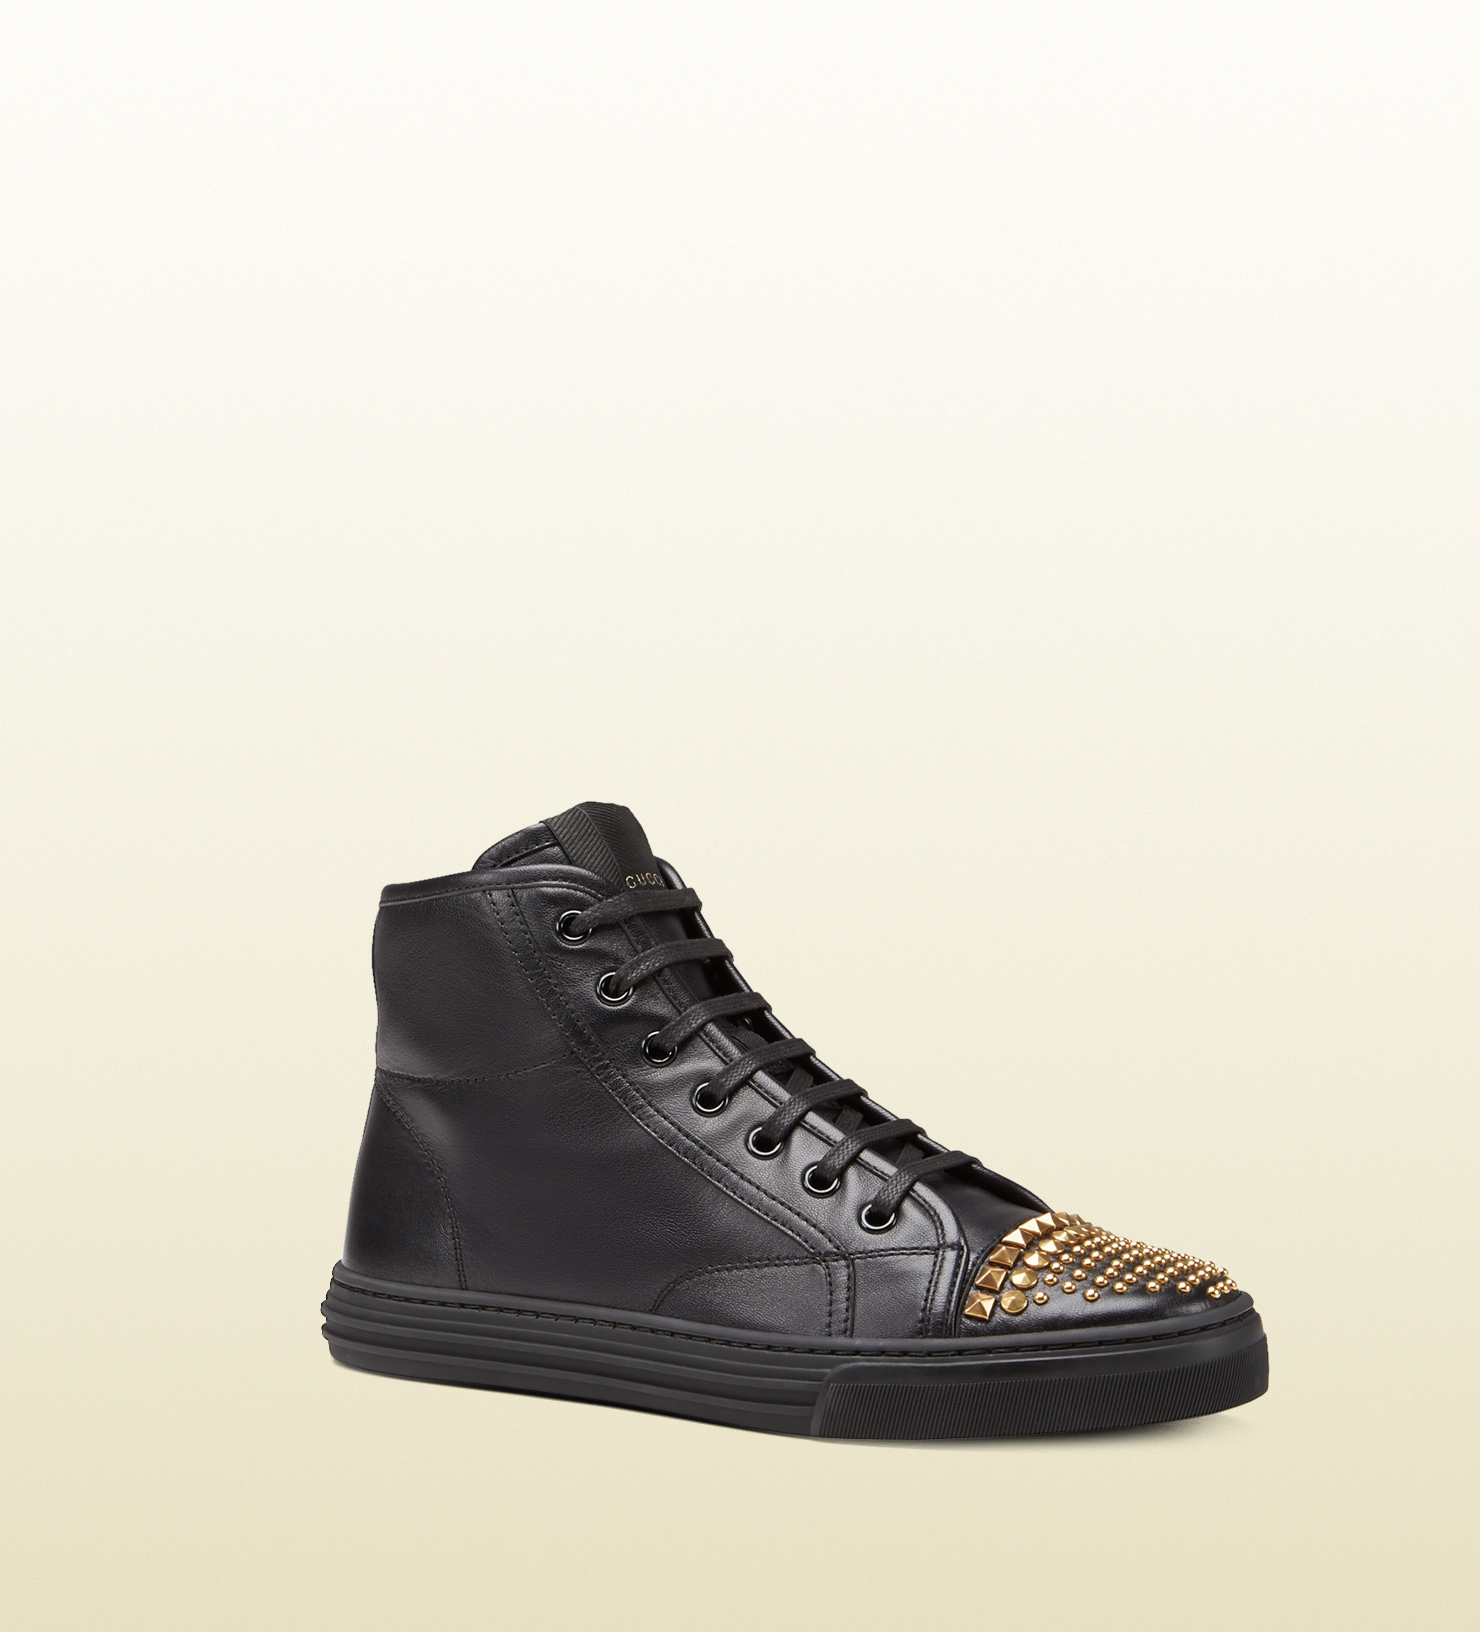 Gucci Shoes Black High Top Sneaker